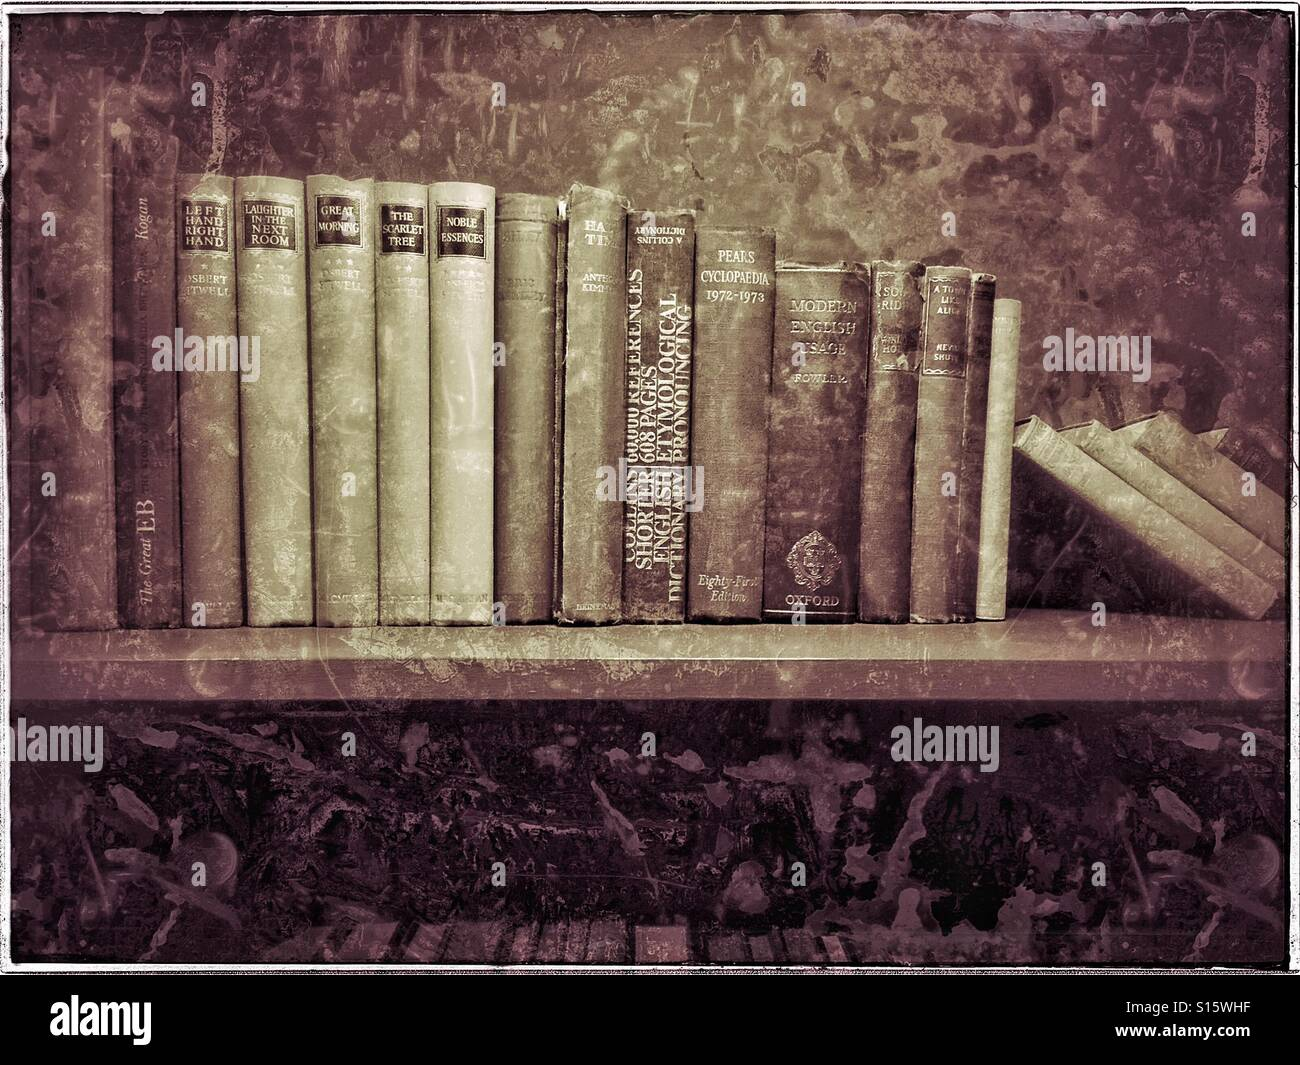 An antique effect image of a selection of hardback books that sit on shelves in a long forgotten room. Photo Credit - Stock Image